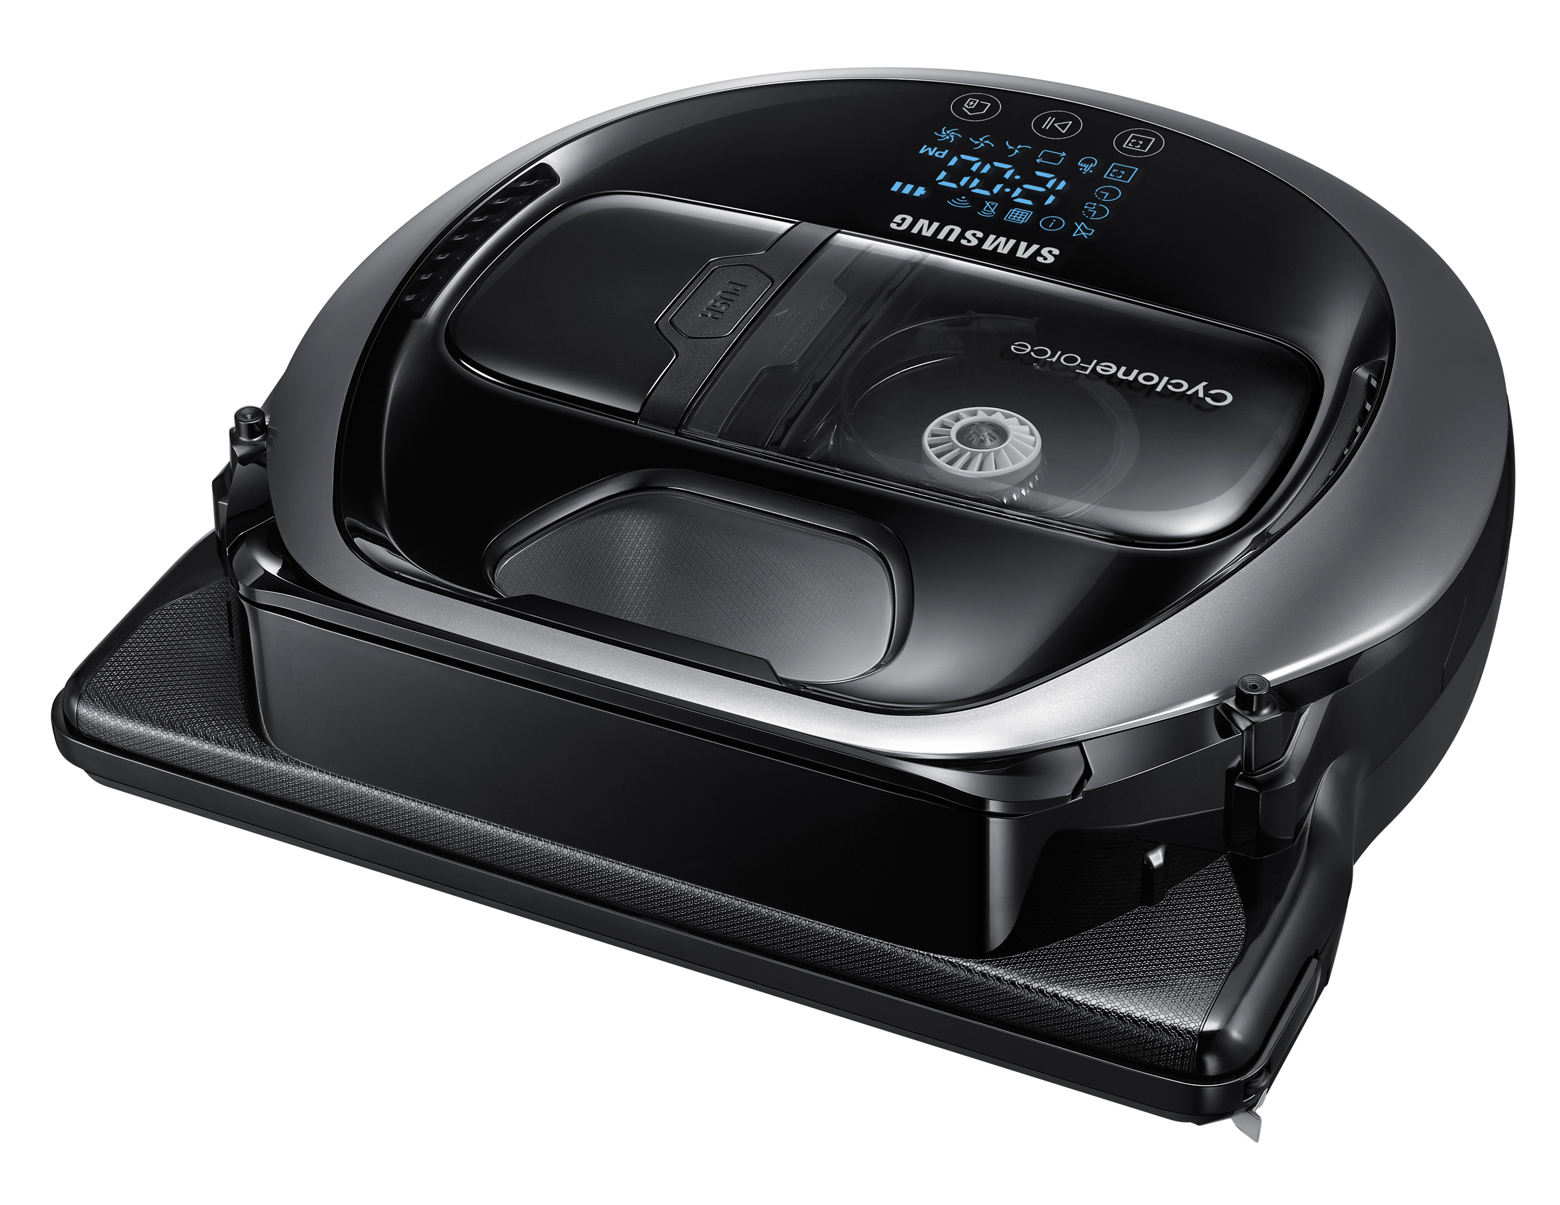 You can control Samsung's latest robot vacuum cleaner using Alexa